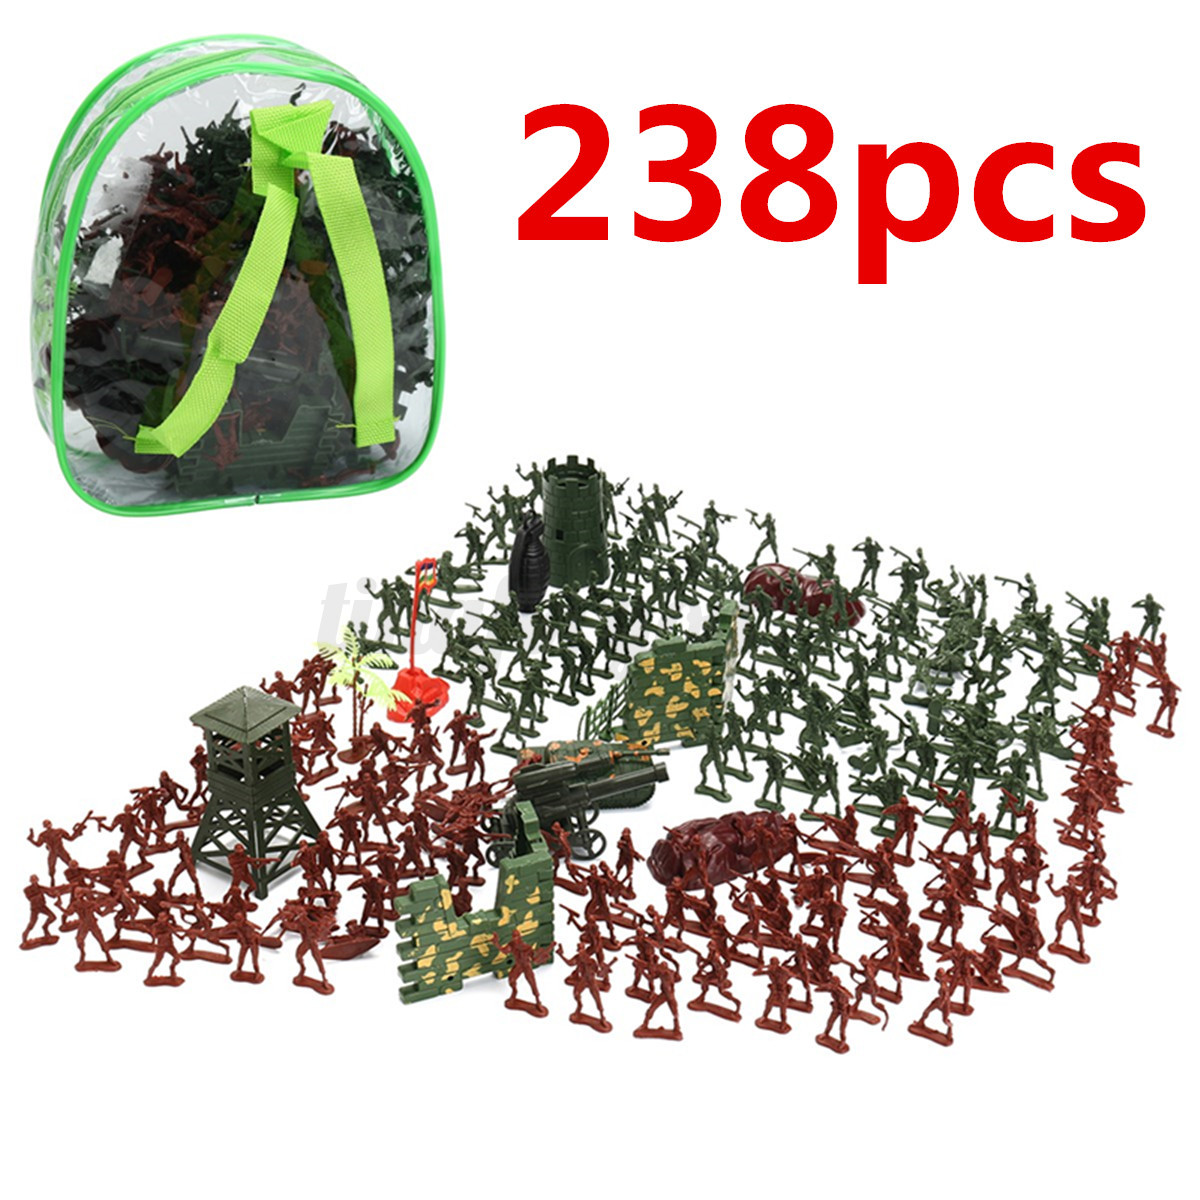 238PCS-Military-Plastic-Soldiers-Army-Men-Figures-Tanks-Accessories-Play-Set-Toy thumbnail 1